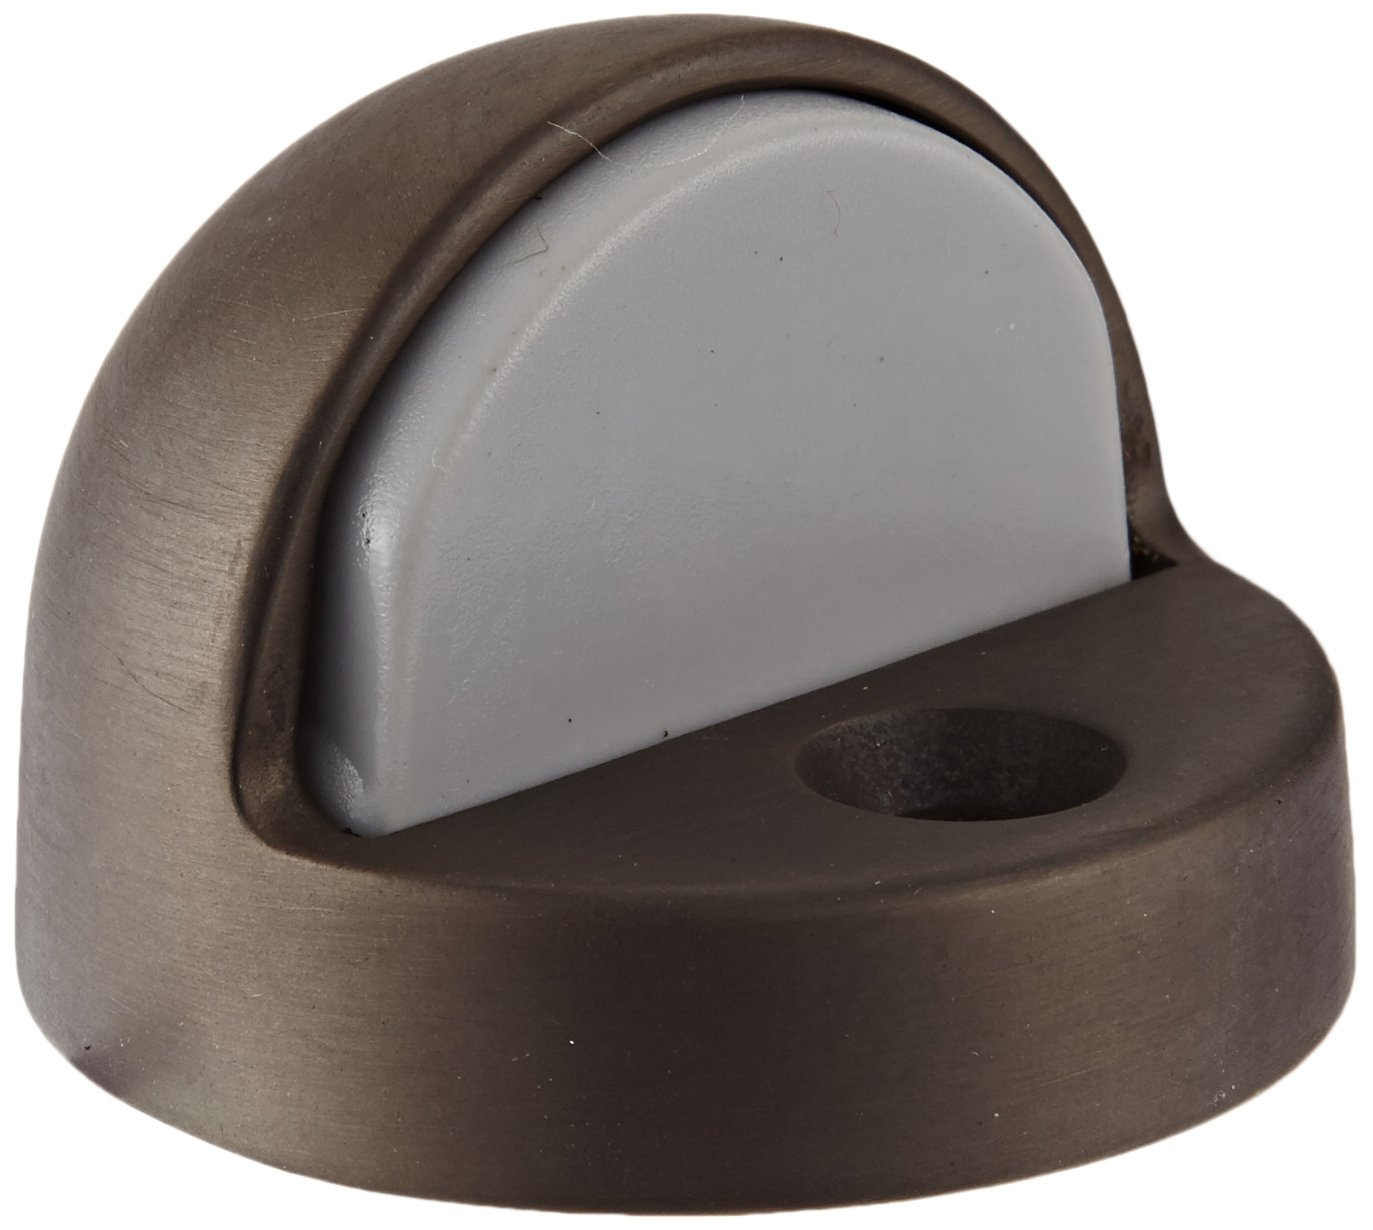 Satin Oxidized Oil Rubbed Finish 12 X 1-1//2 FH WS Fastener with Plastic Anchor 1-7//8 Base Diameter x 1//2 Base Length Rockwood 442.10B Bronze Floor Mount High Dome Stop